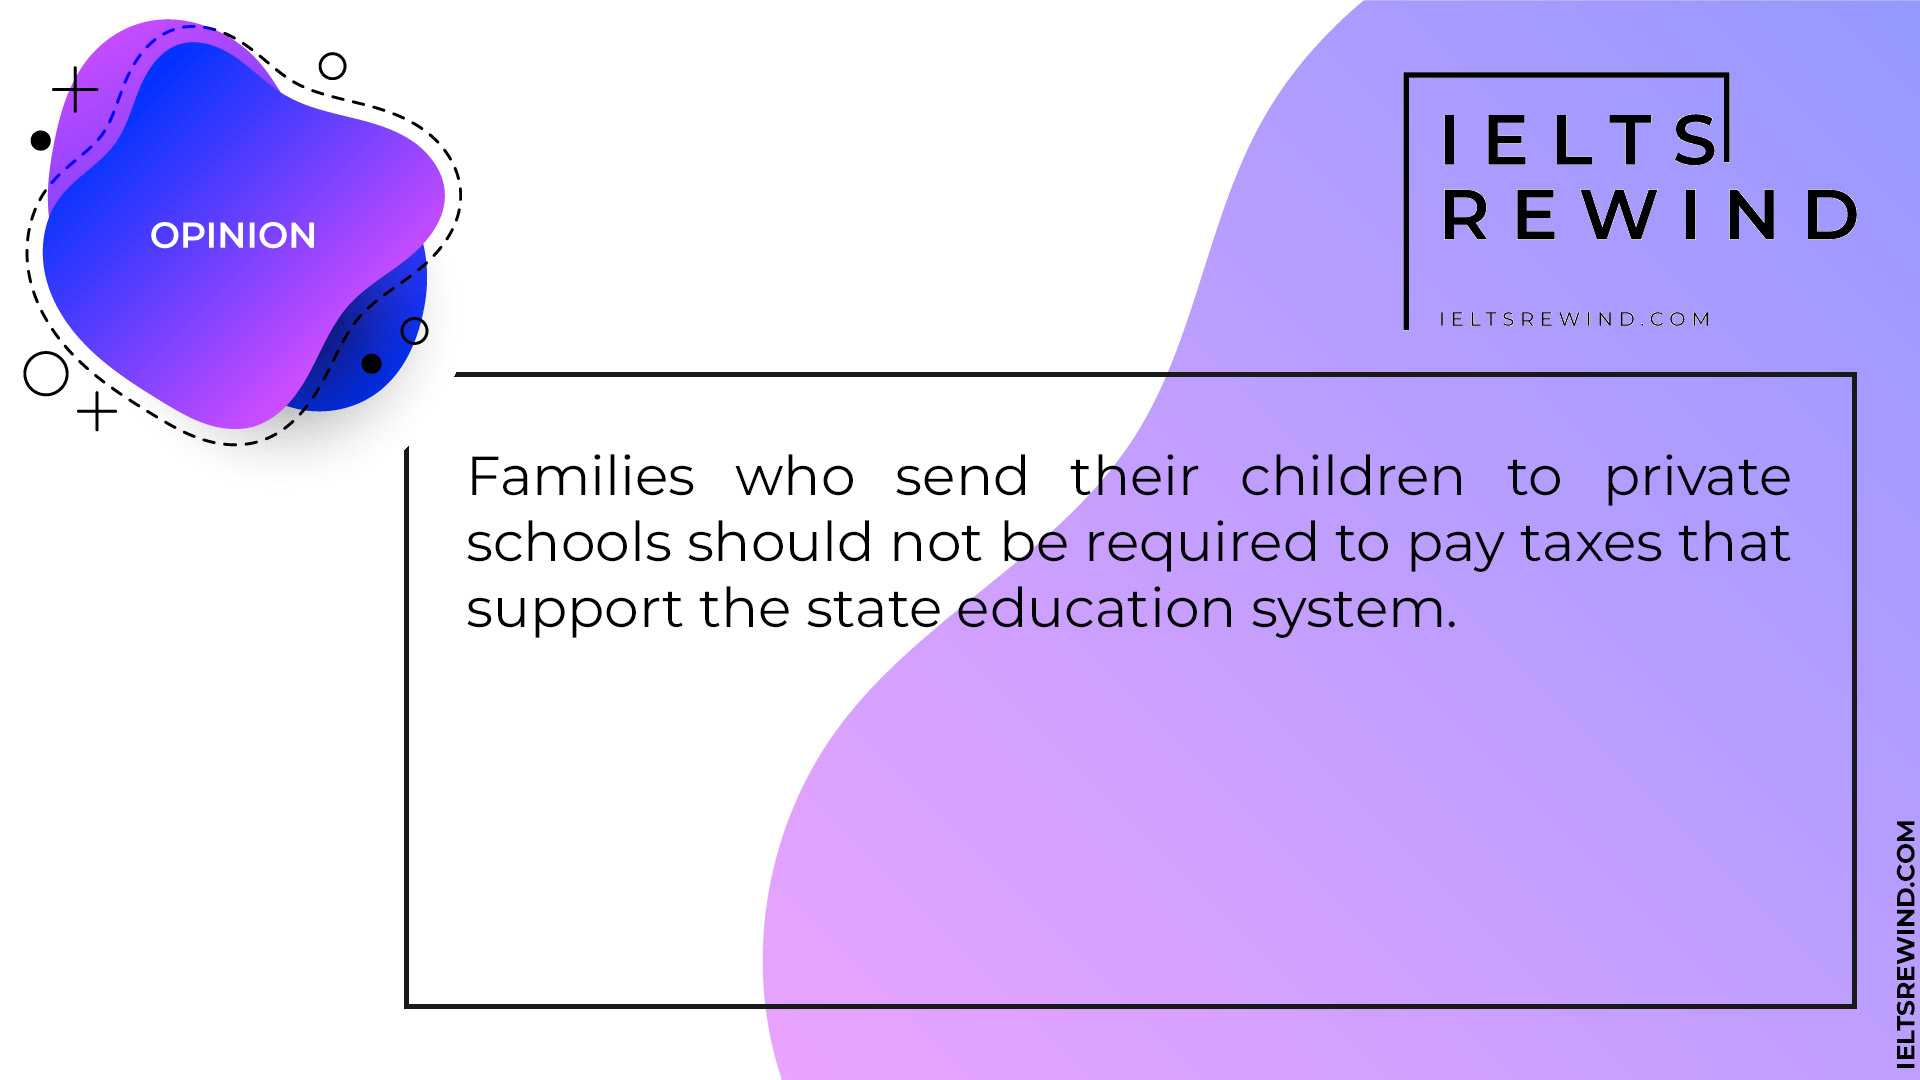 Families who send their children to private schools should not pay taxes